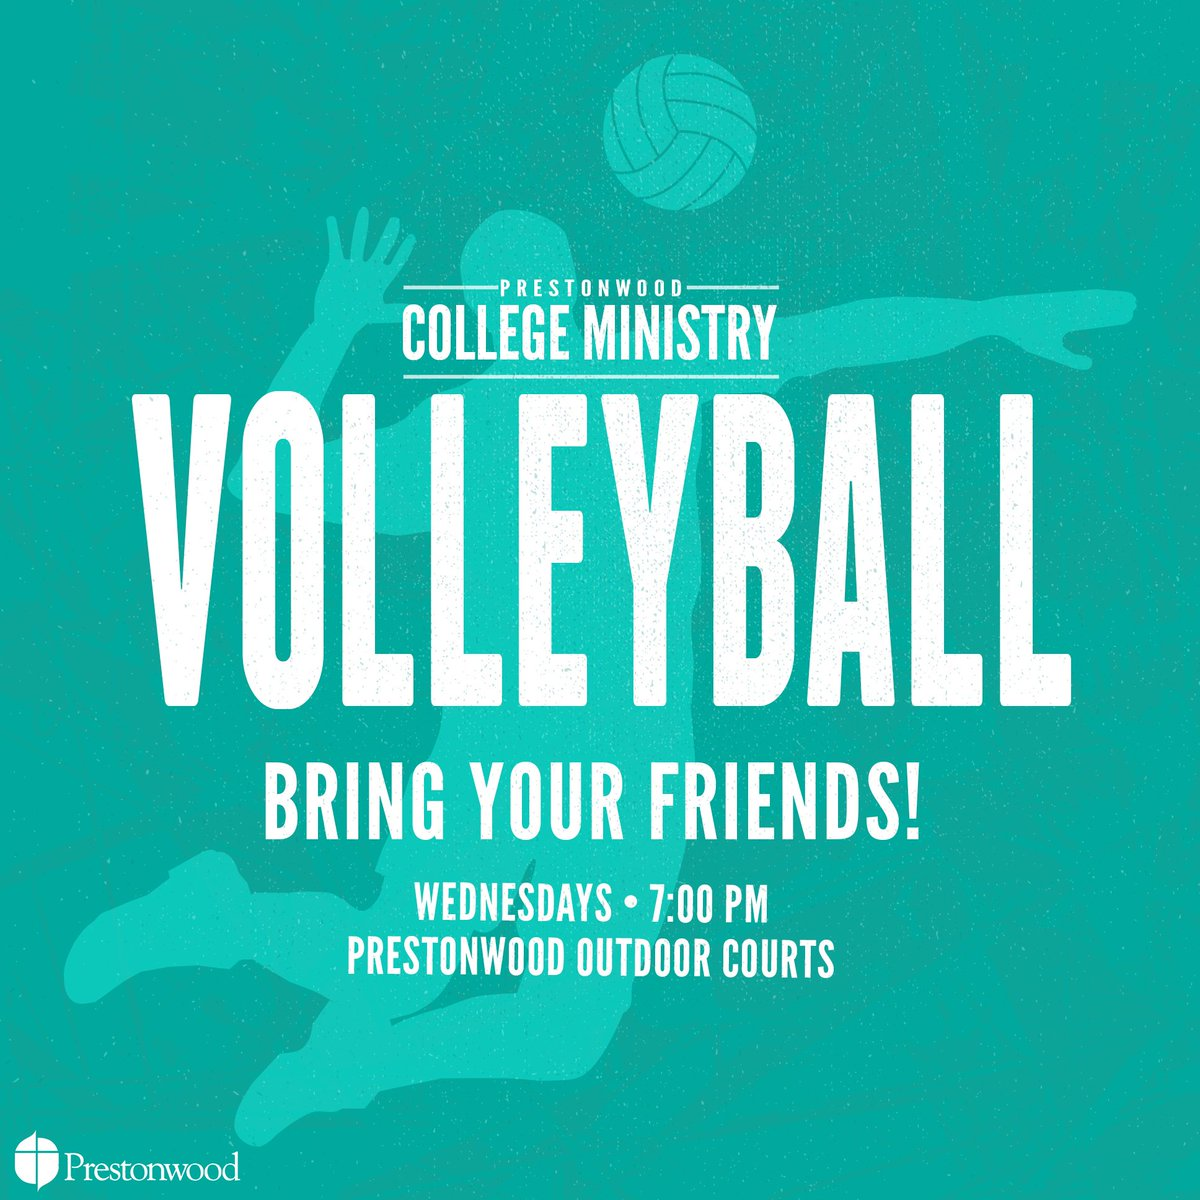 Back at it with the white sand! Join us for a devo and sand volleyball tomorrow night!! 🏐